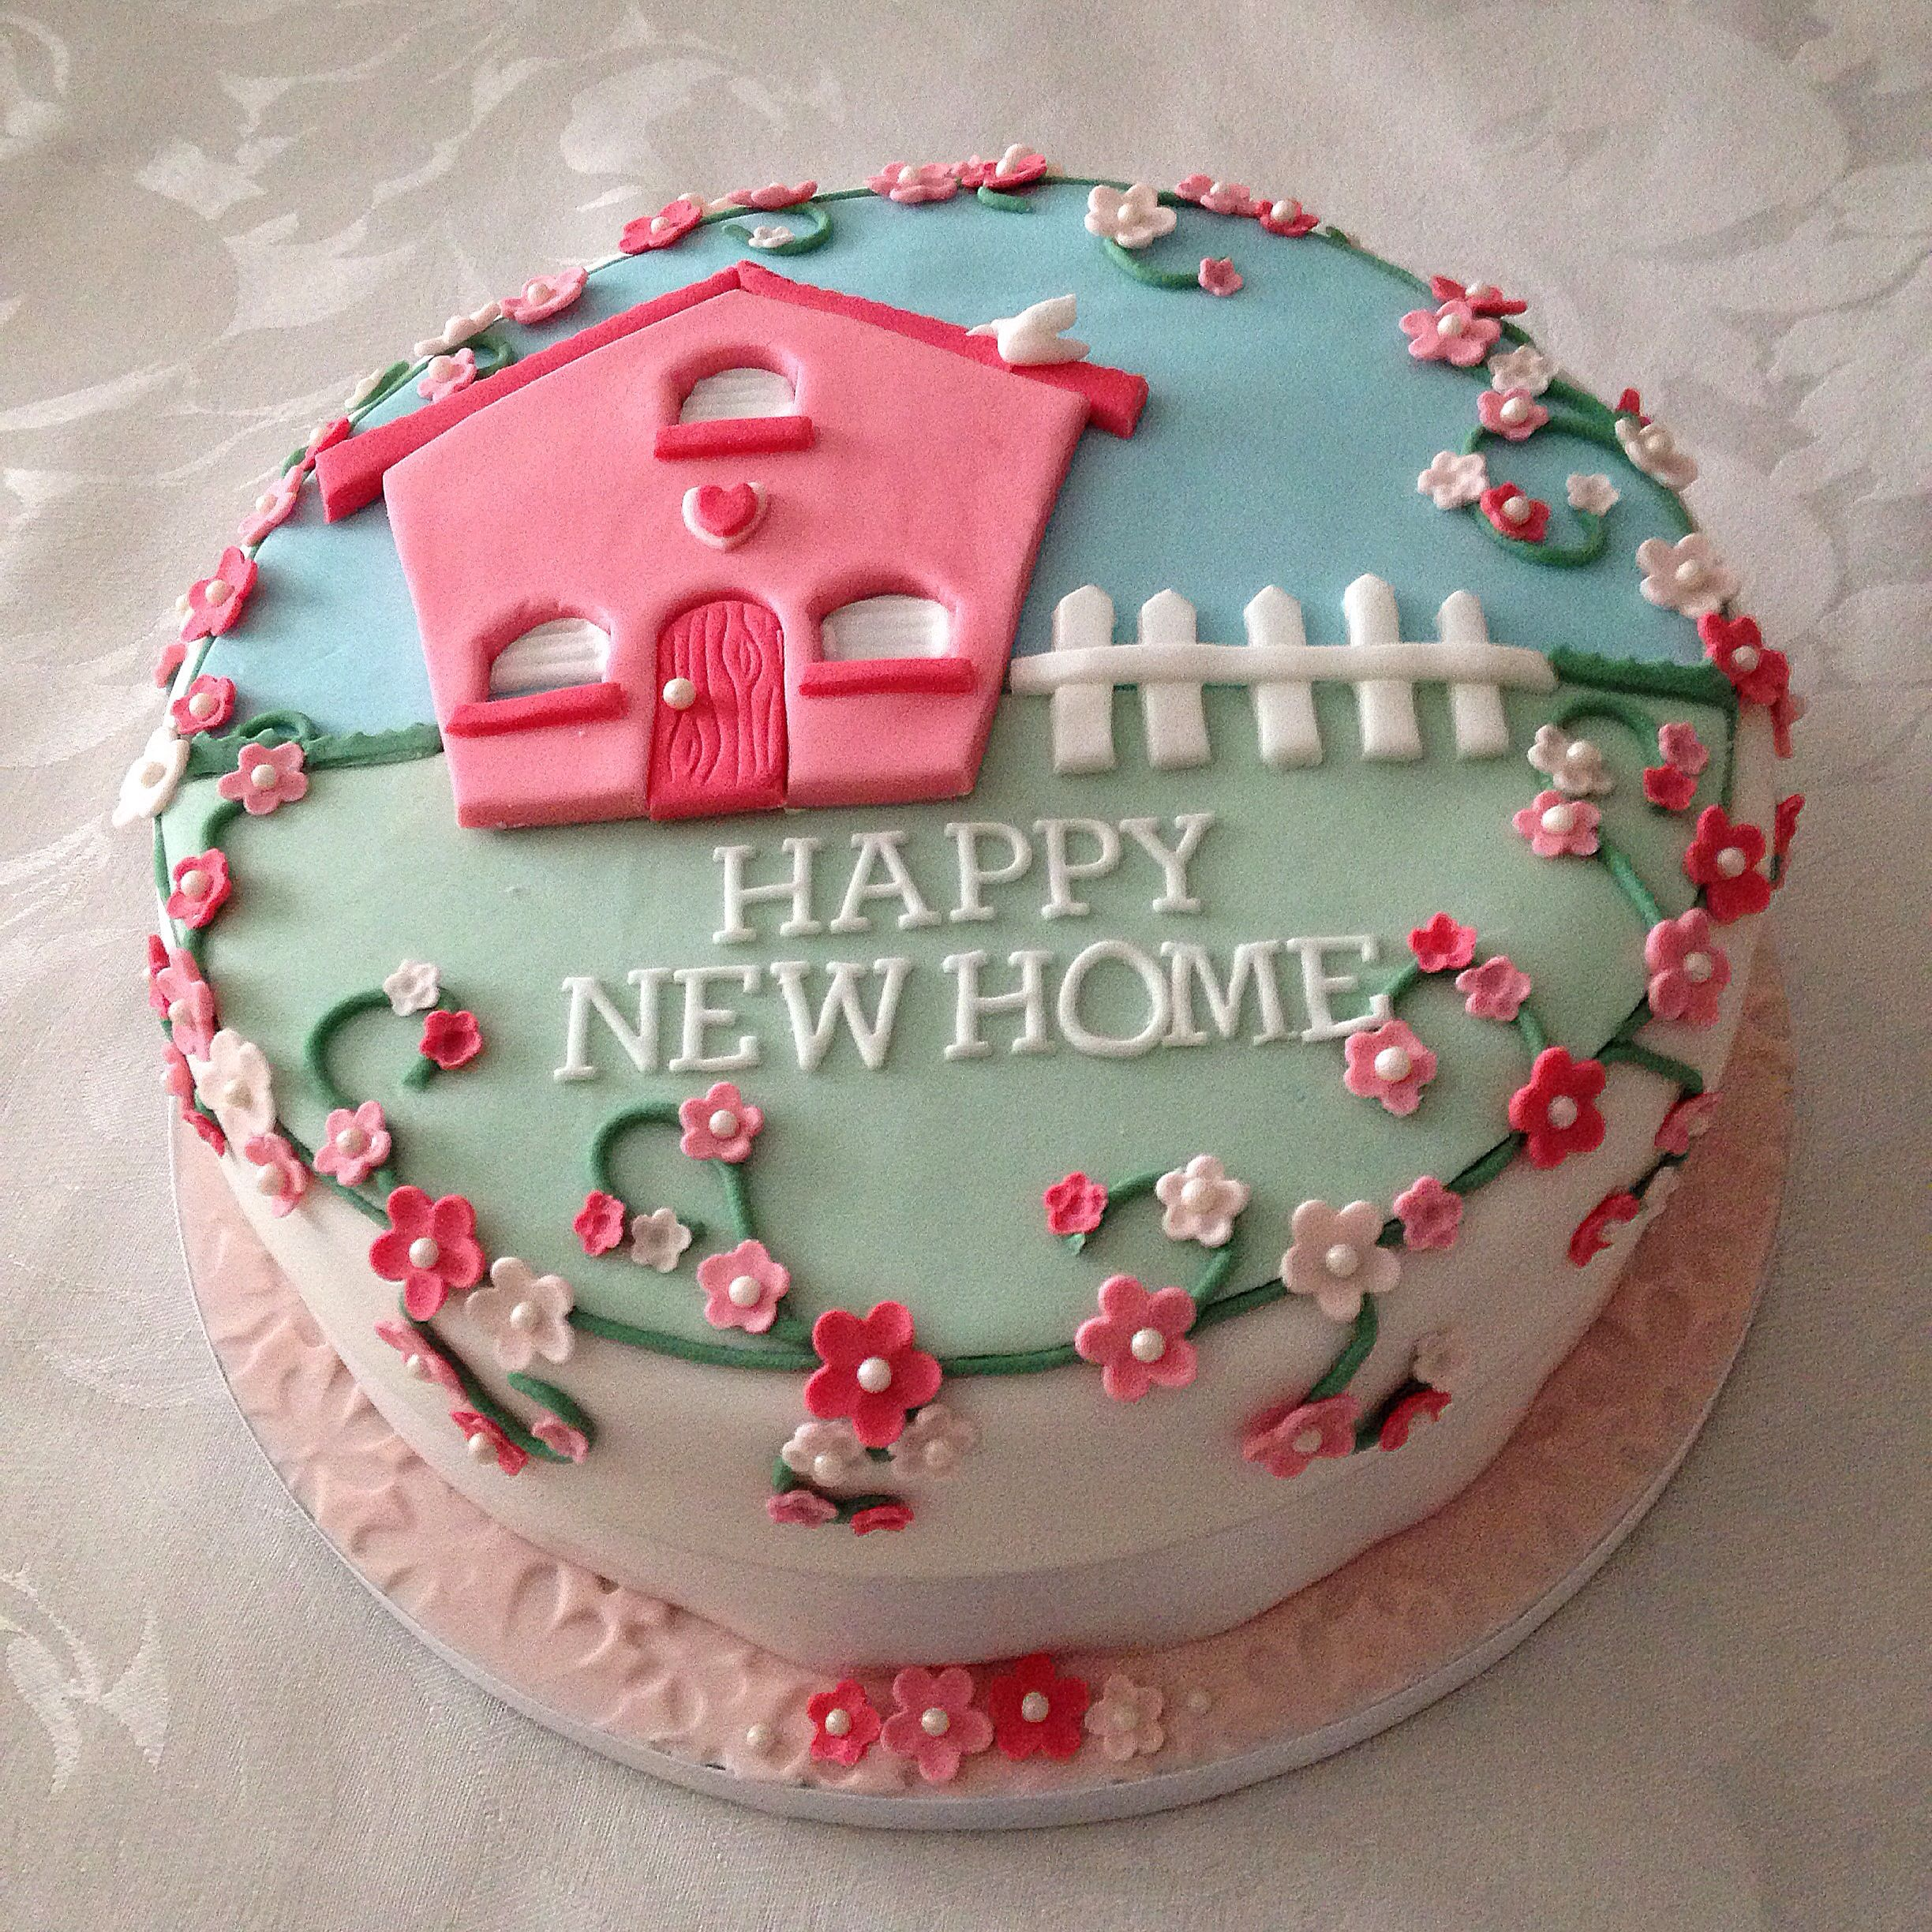 Cake Designs For Housewarming : New Home Cake Food Pinterest Cake, Housewarming cake ...